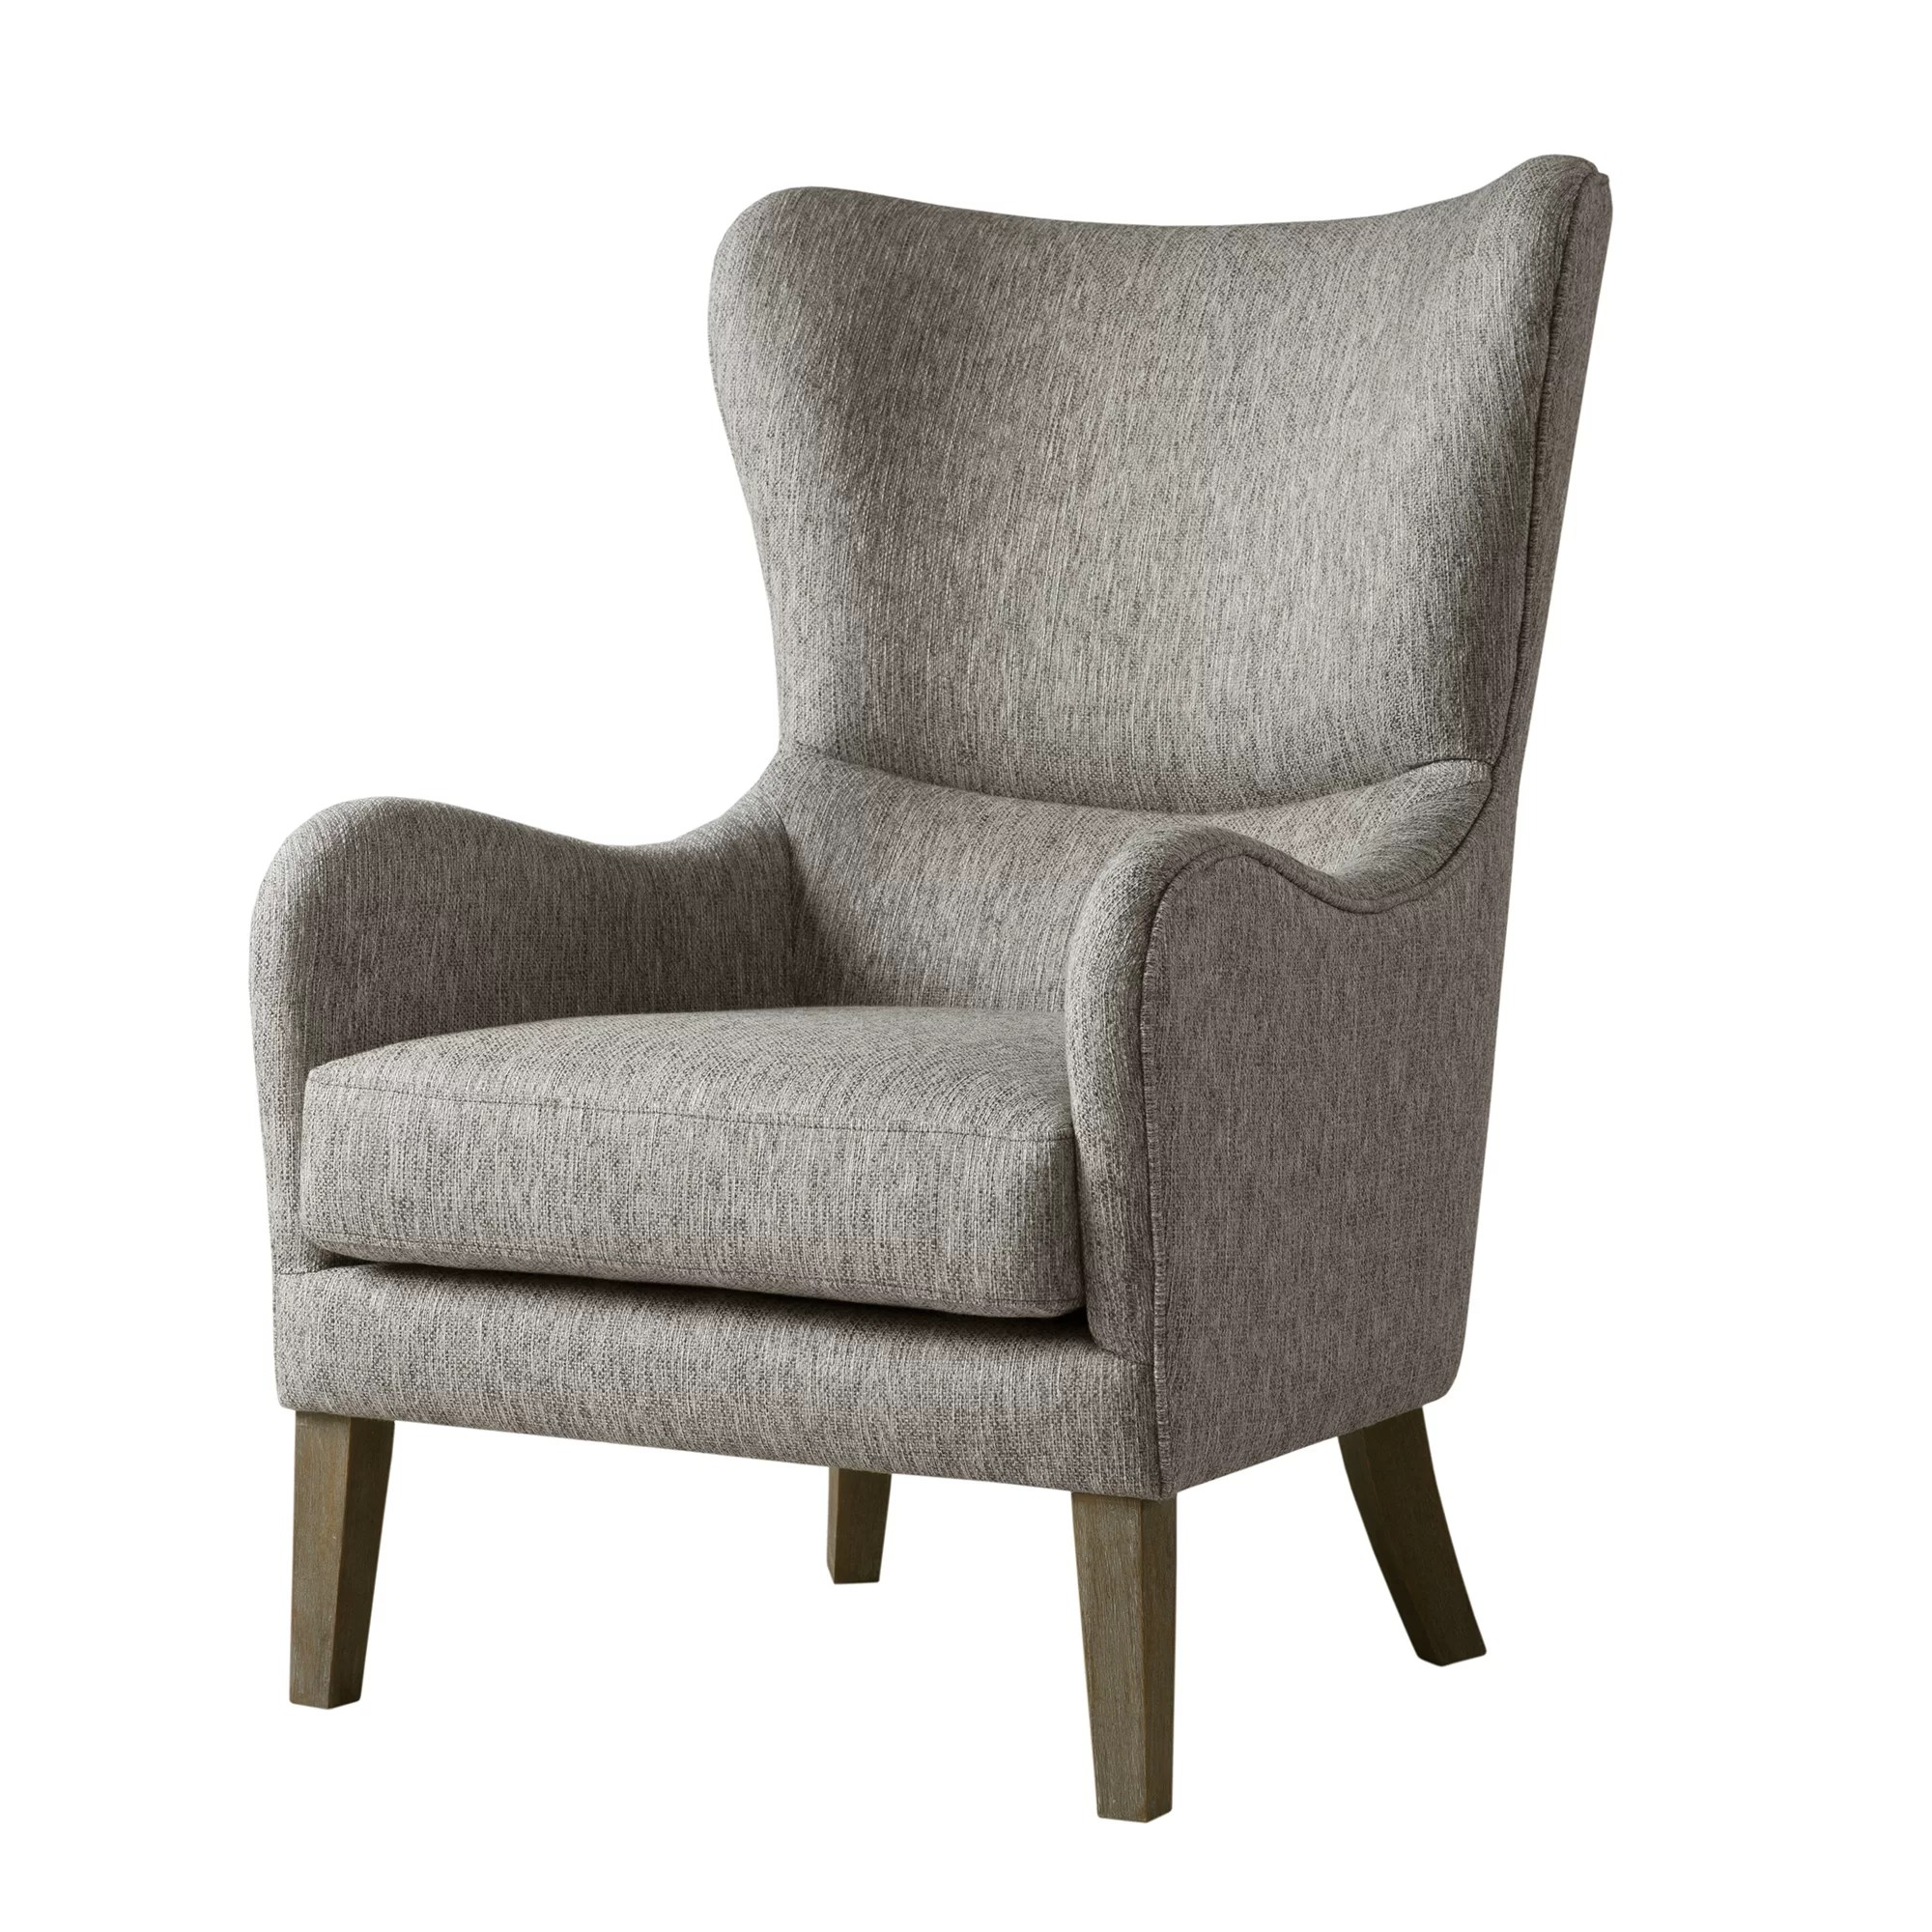 Congenial Granville Swoop Wingback Chair Reviews Joss Main Wing Back Chairs Kijiji Wing Back Chairs Canada houzz-03 Wing Back Chairs